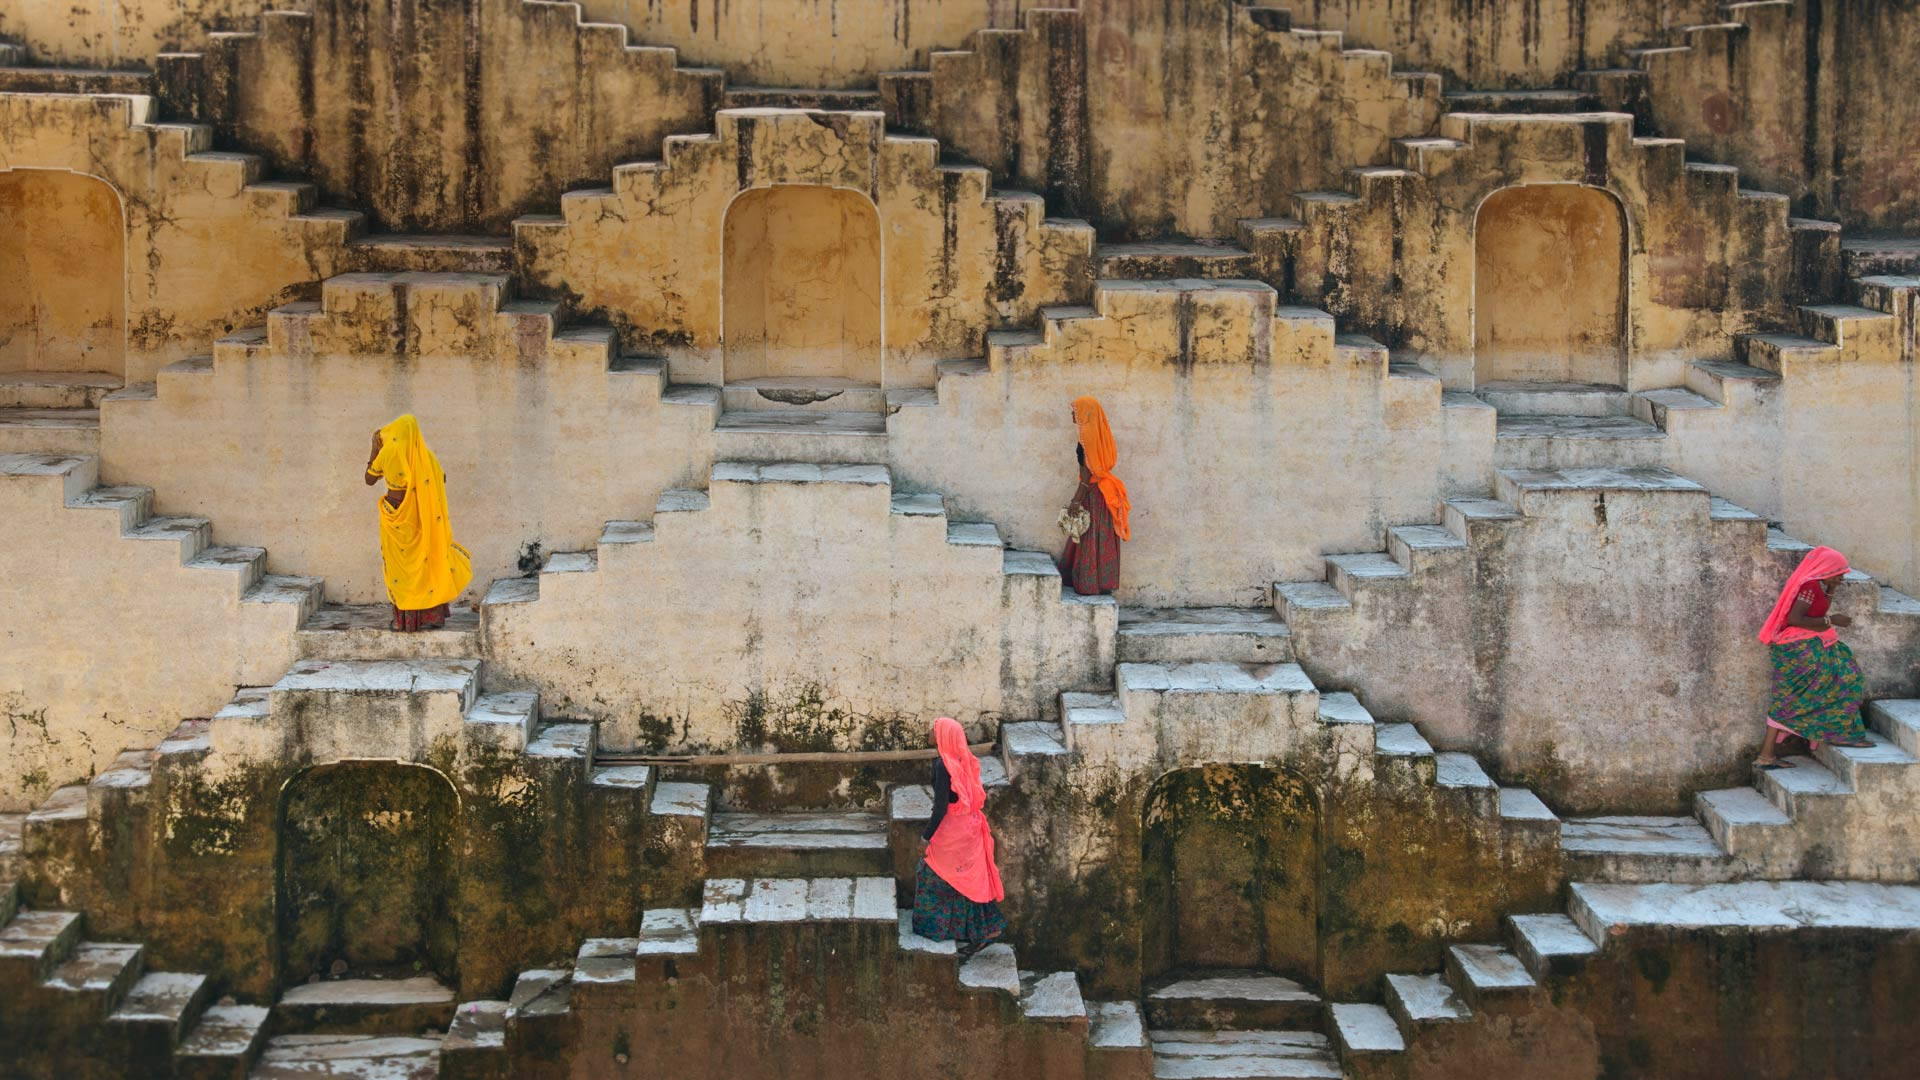 Women climbing a stepwell near Amber Fort in Jaipur, Rajasthan, India (© Shanna Baker/Offset)(Bing United States)